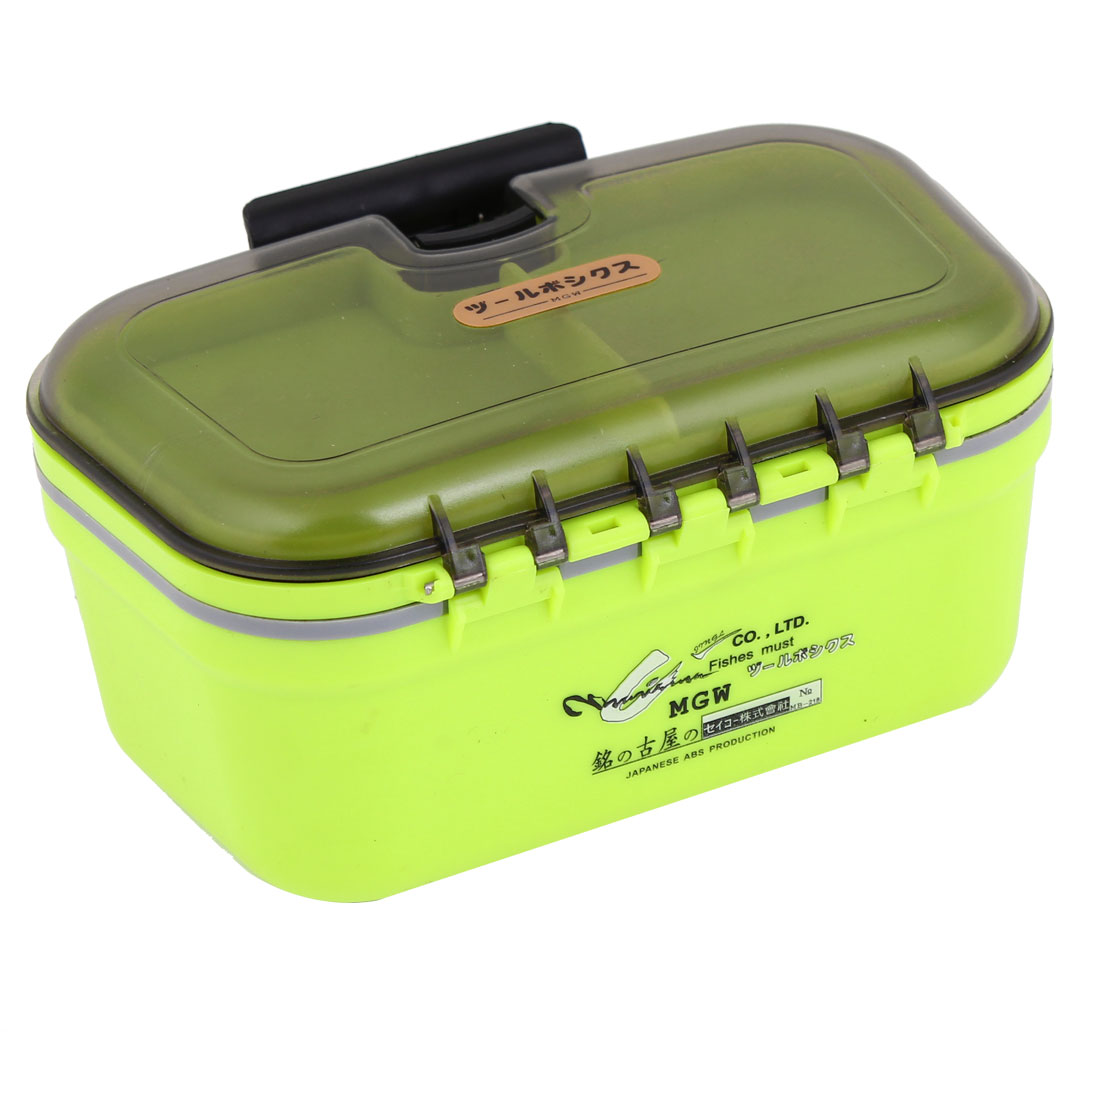 Plastic 4 Slots Electronic Components Storage Case Light Green Black